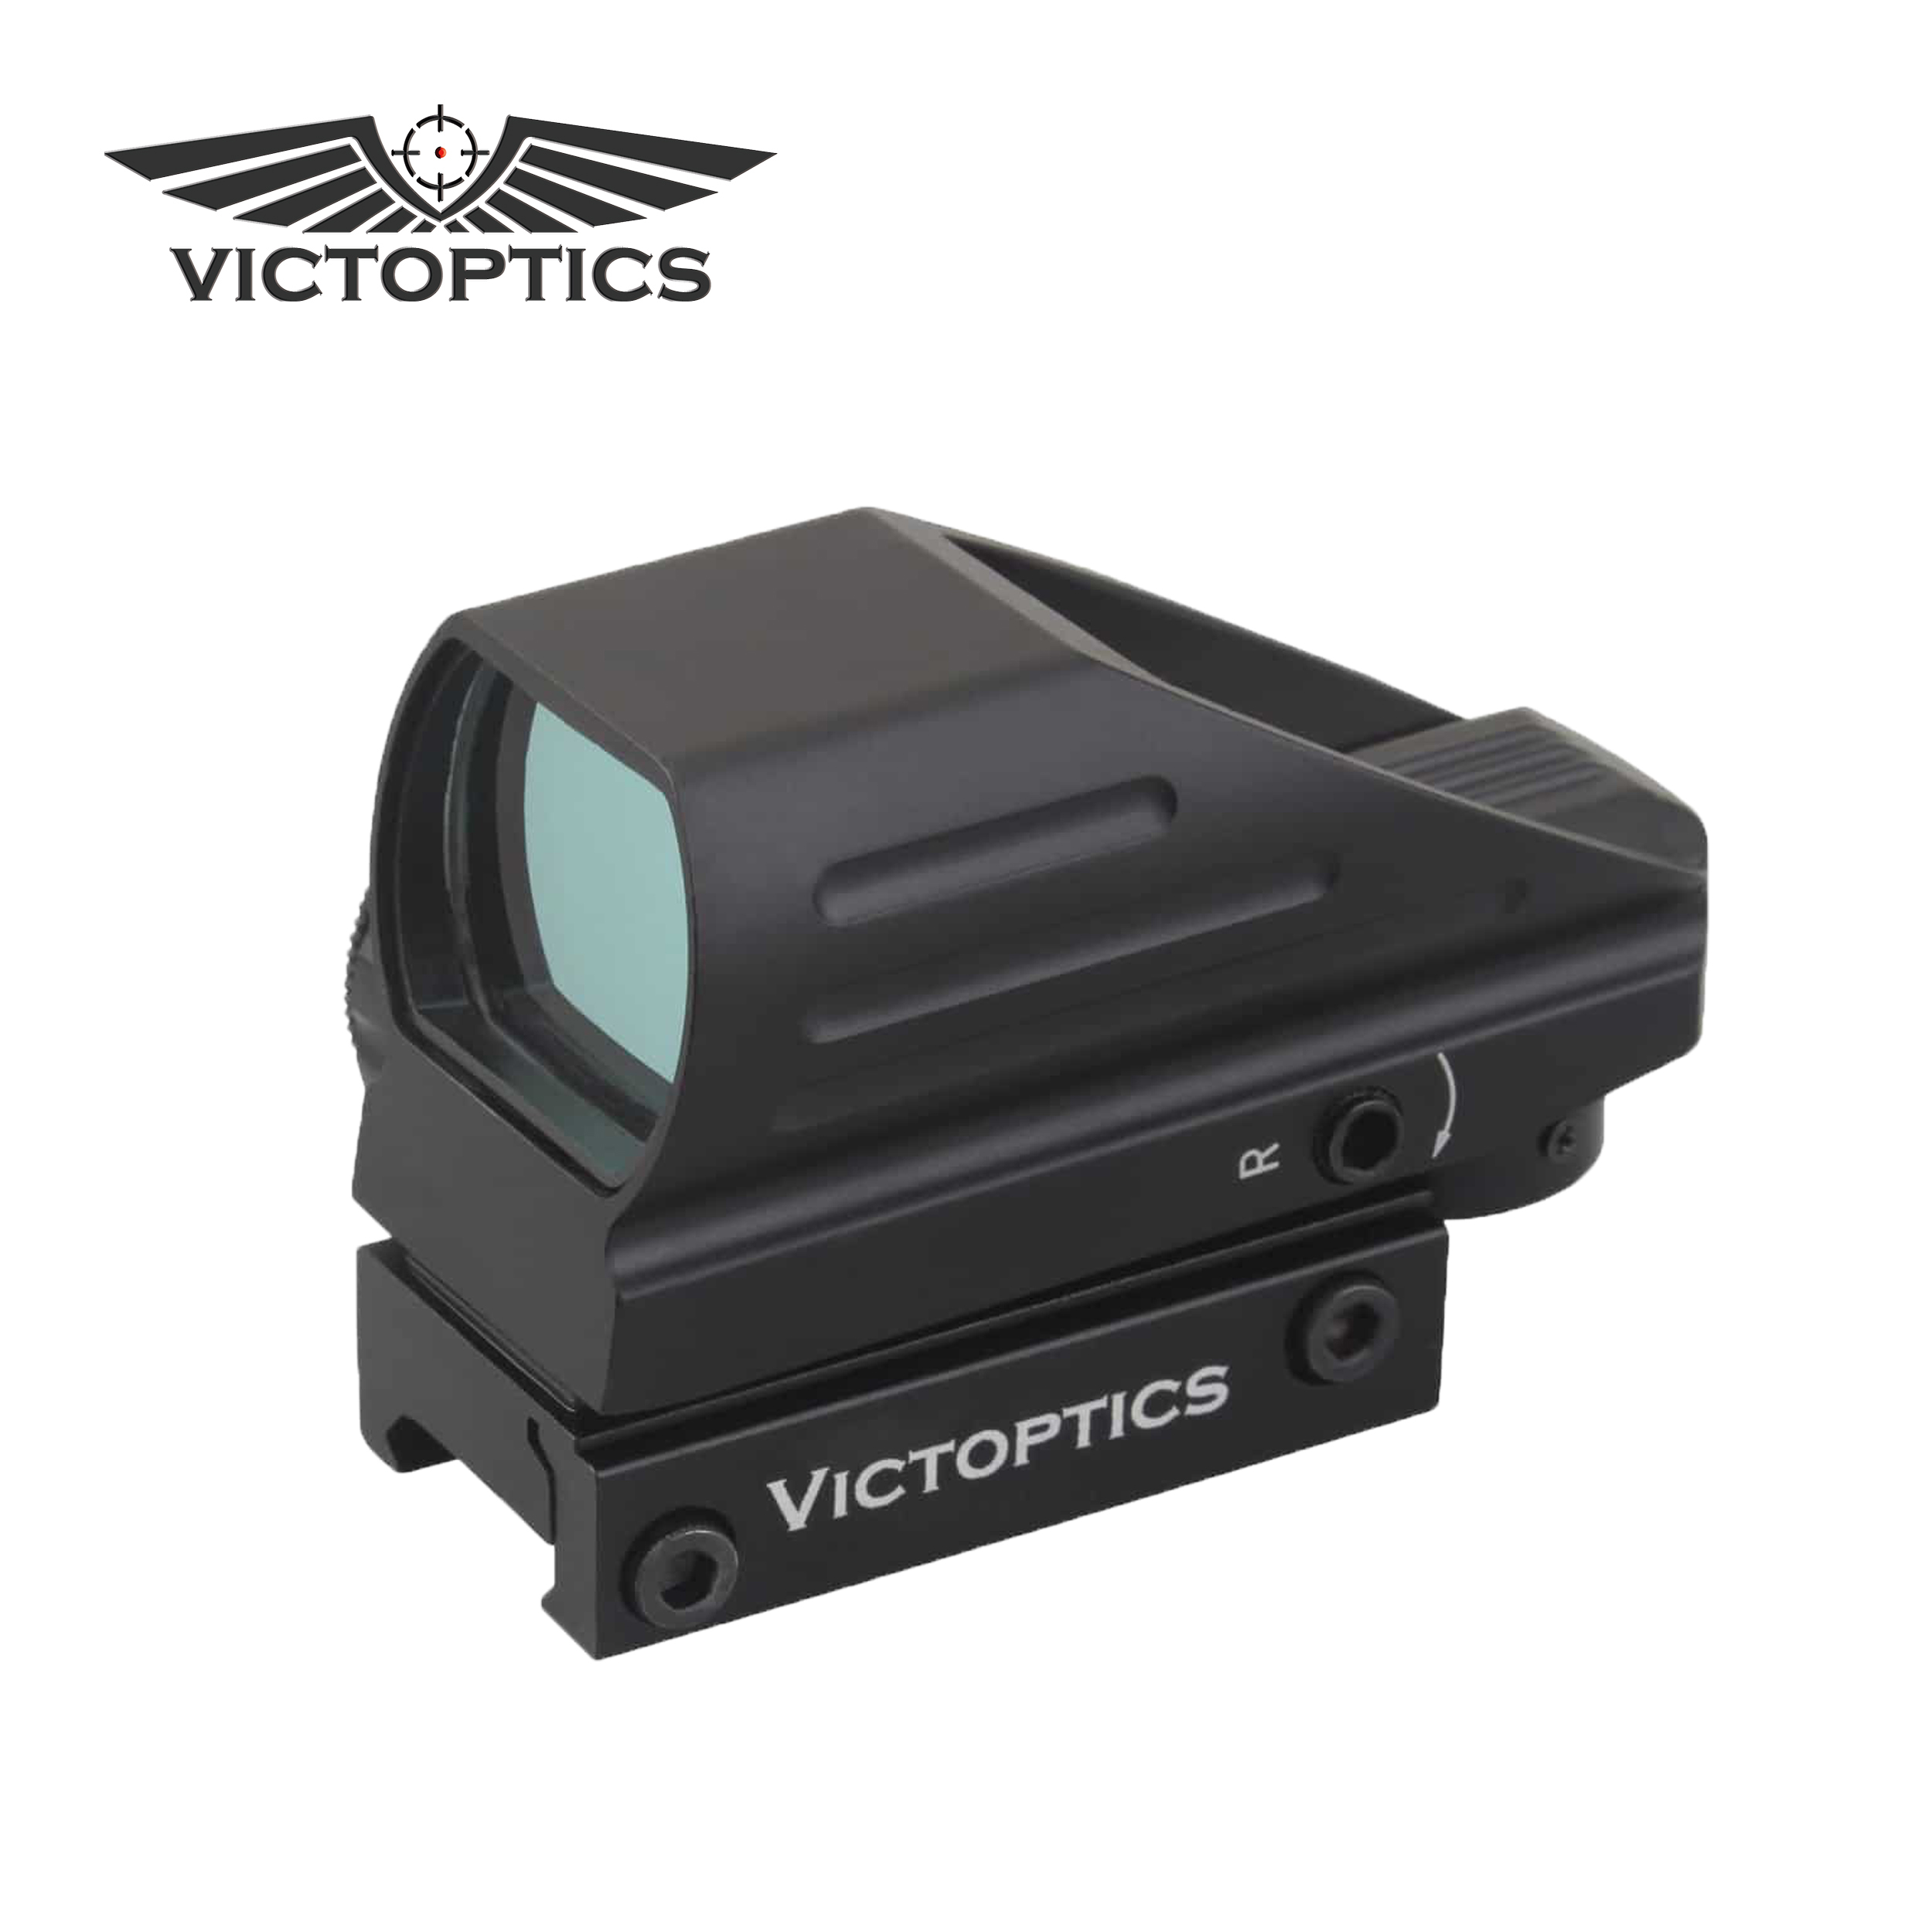 VictOptics 1x22x33 Hunting Compact Red Dot Sight Scope Four Reticle Shock Proof For Real Firearms & Airsoft